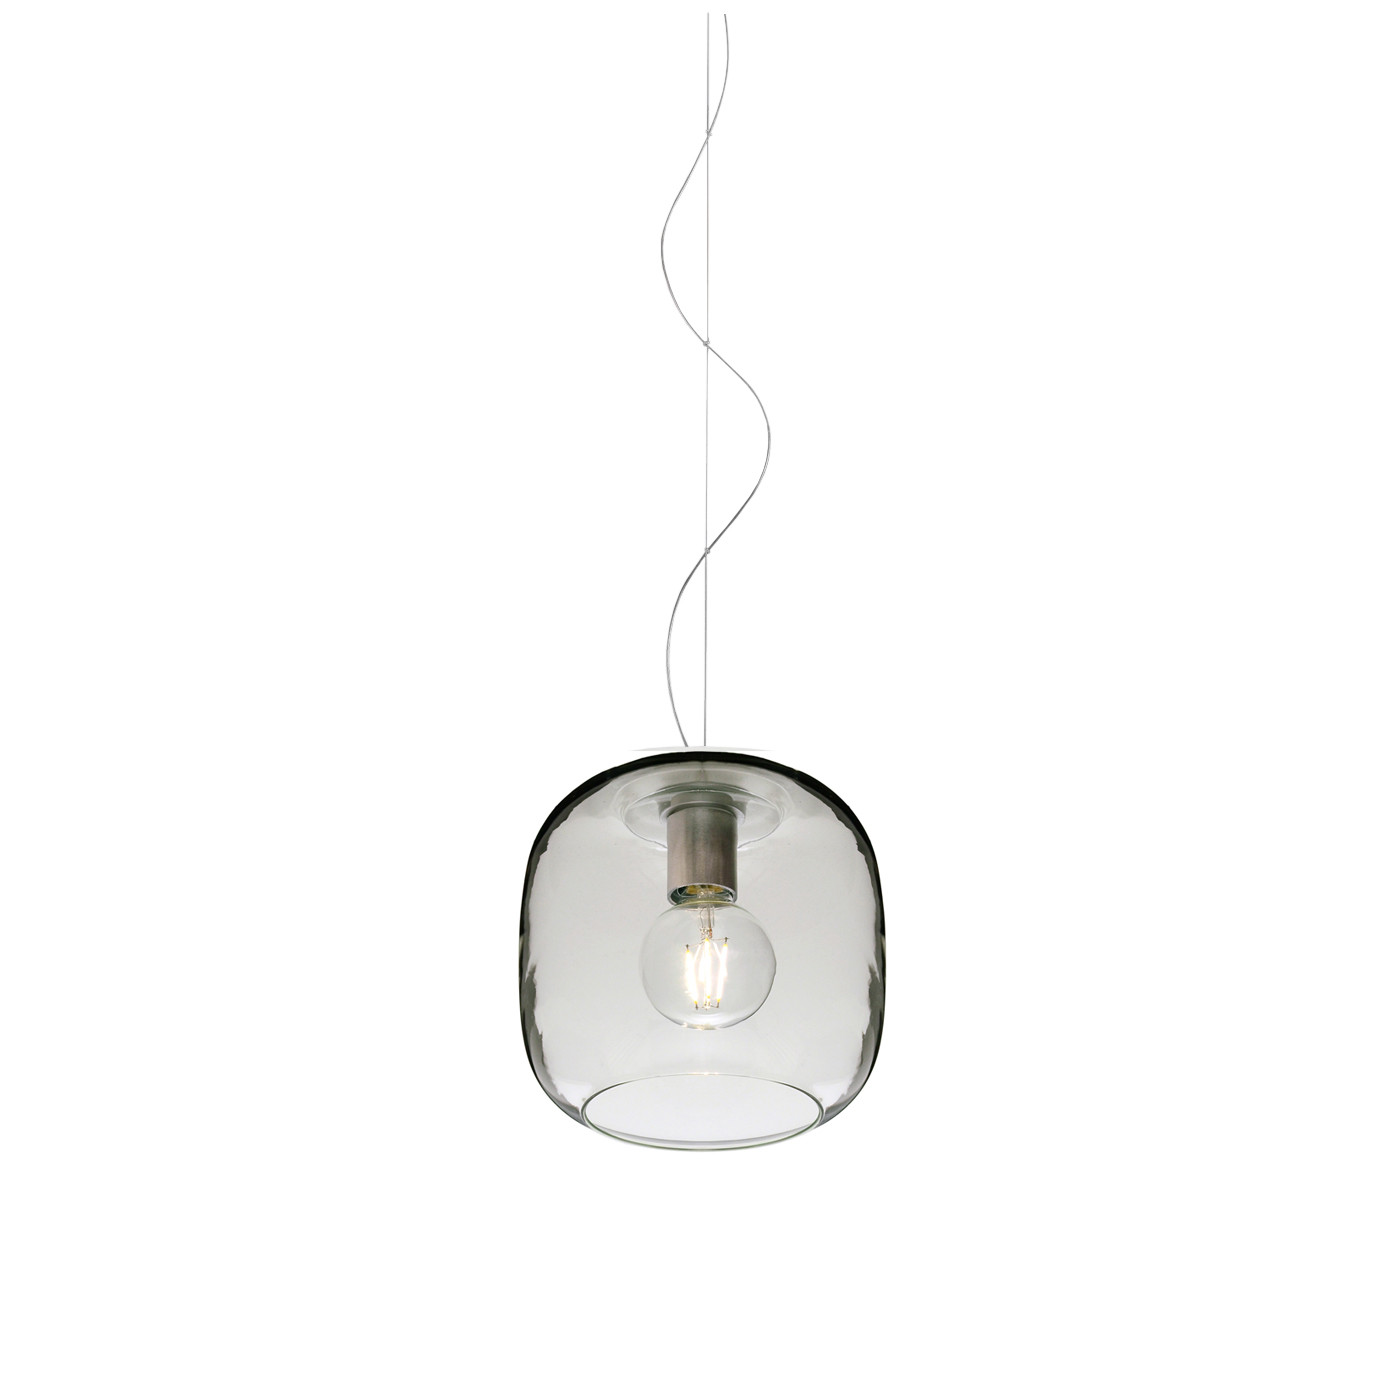 Casablanca Murea Pendant Light